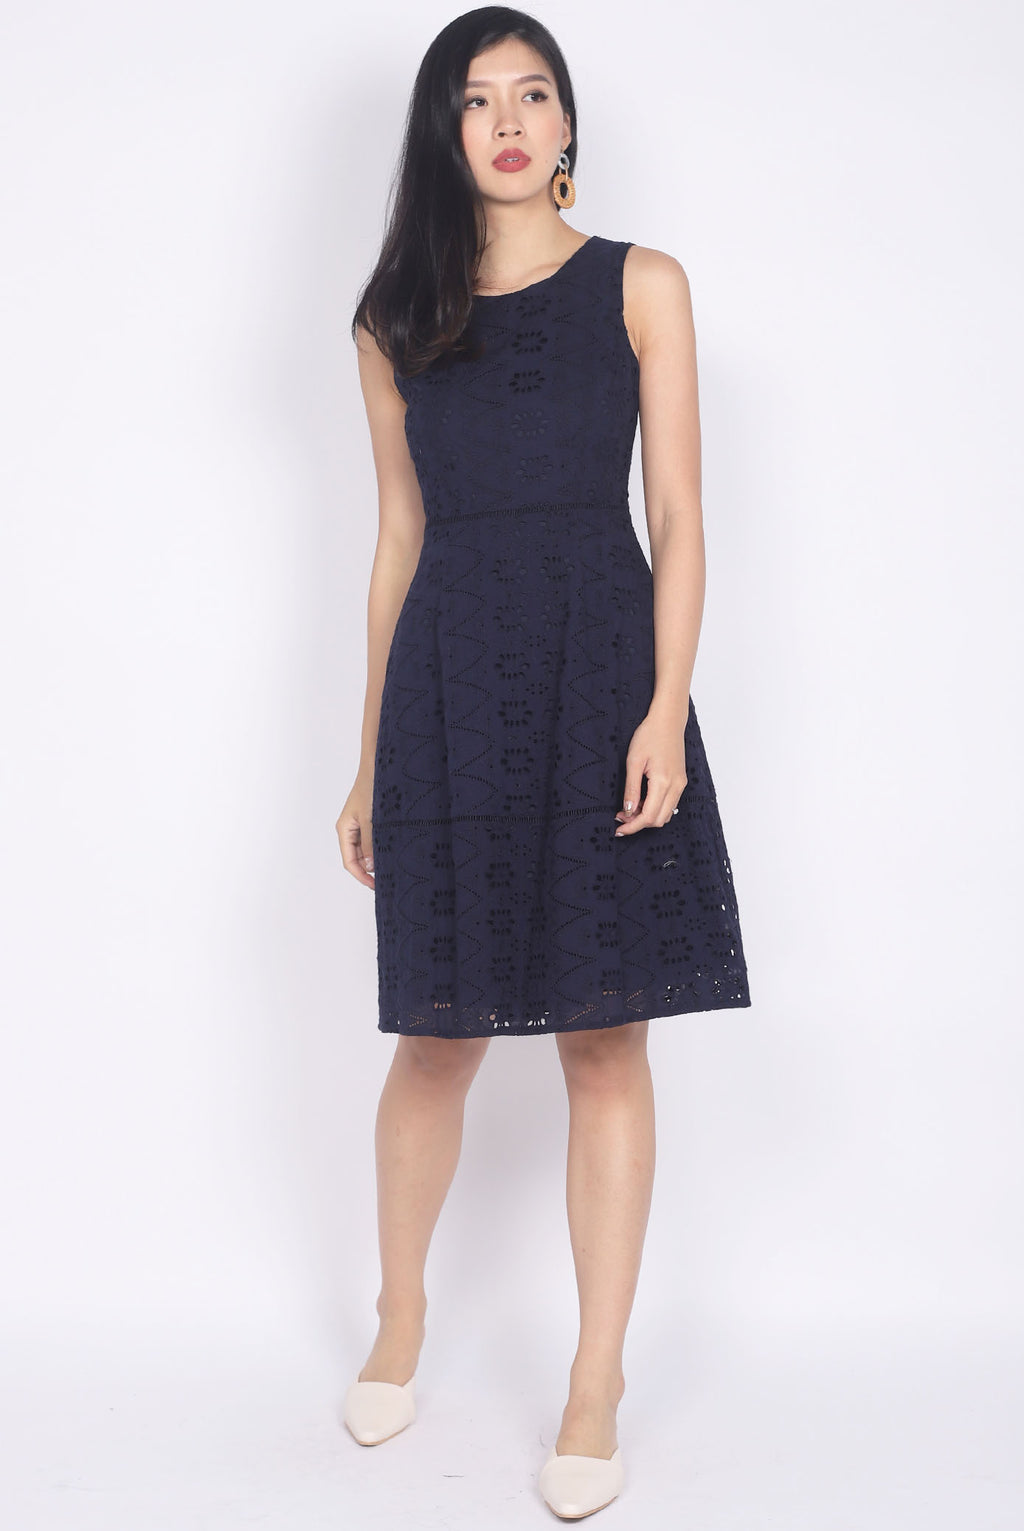 Taffeta Eyelet Dress In Navy Blue